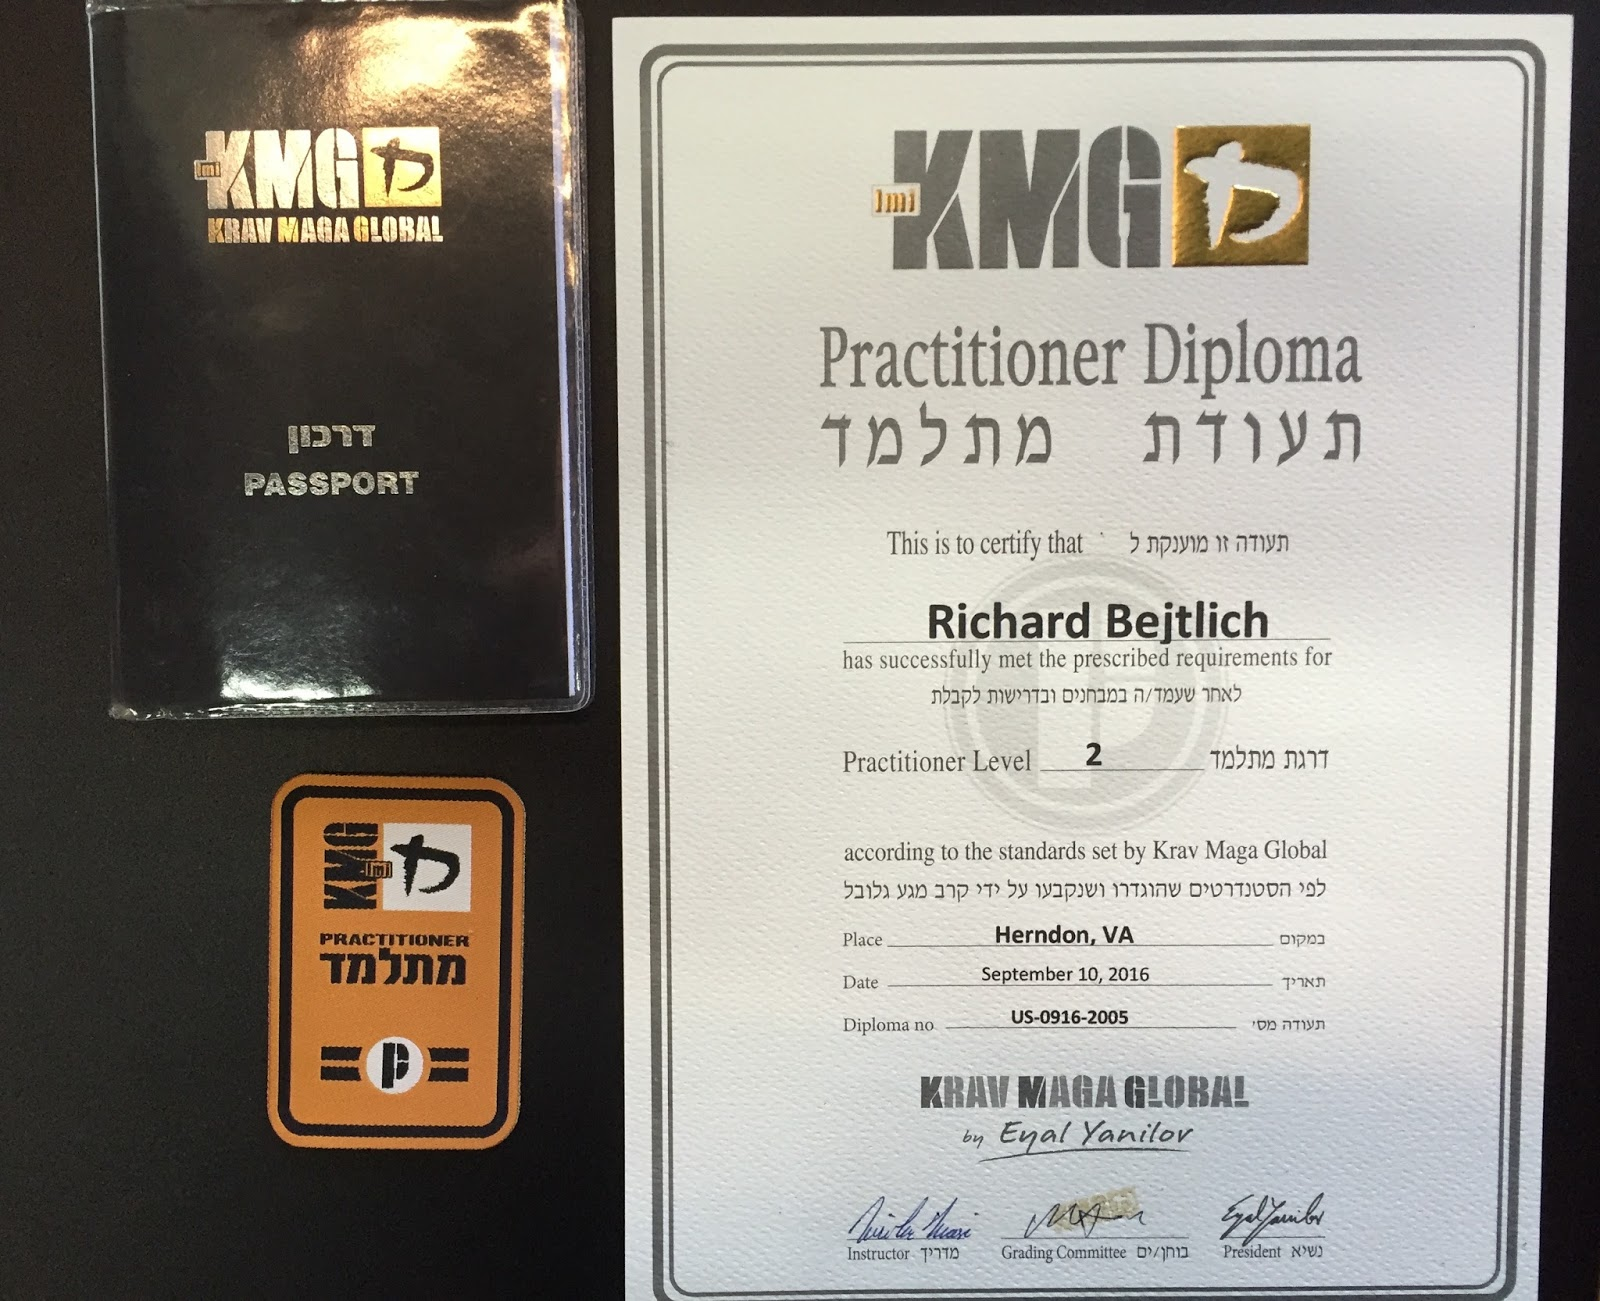 Rejoining The Tao Five Tips For A Successful Krav Maga Grading